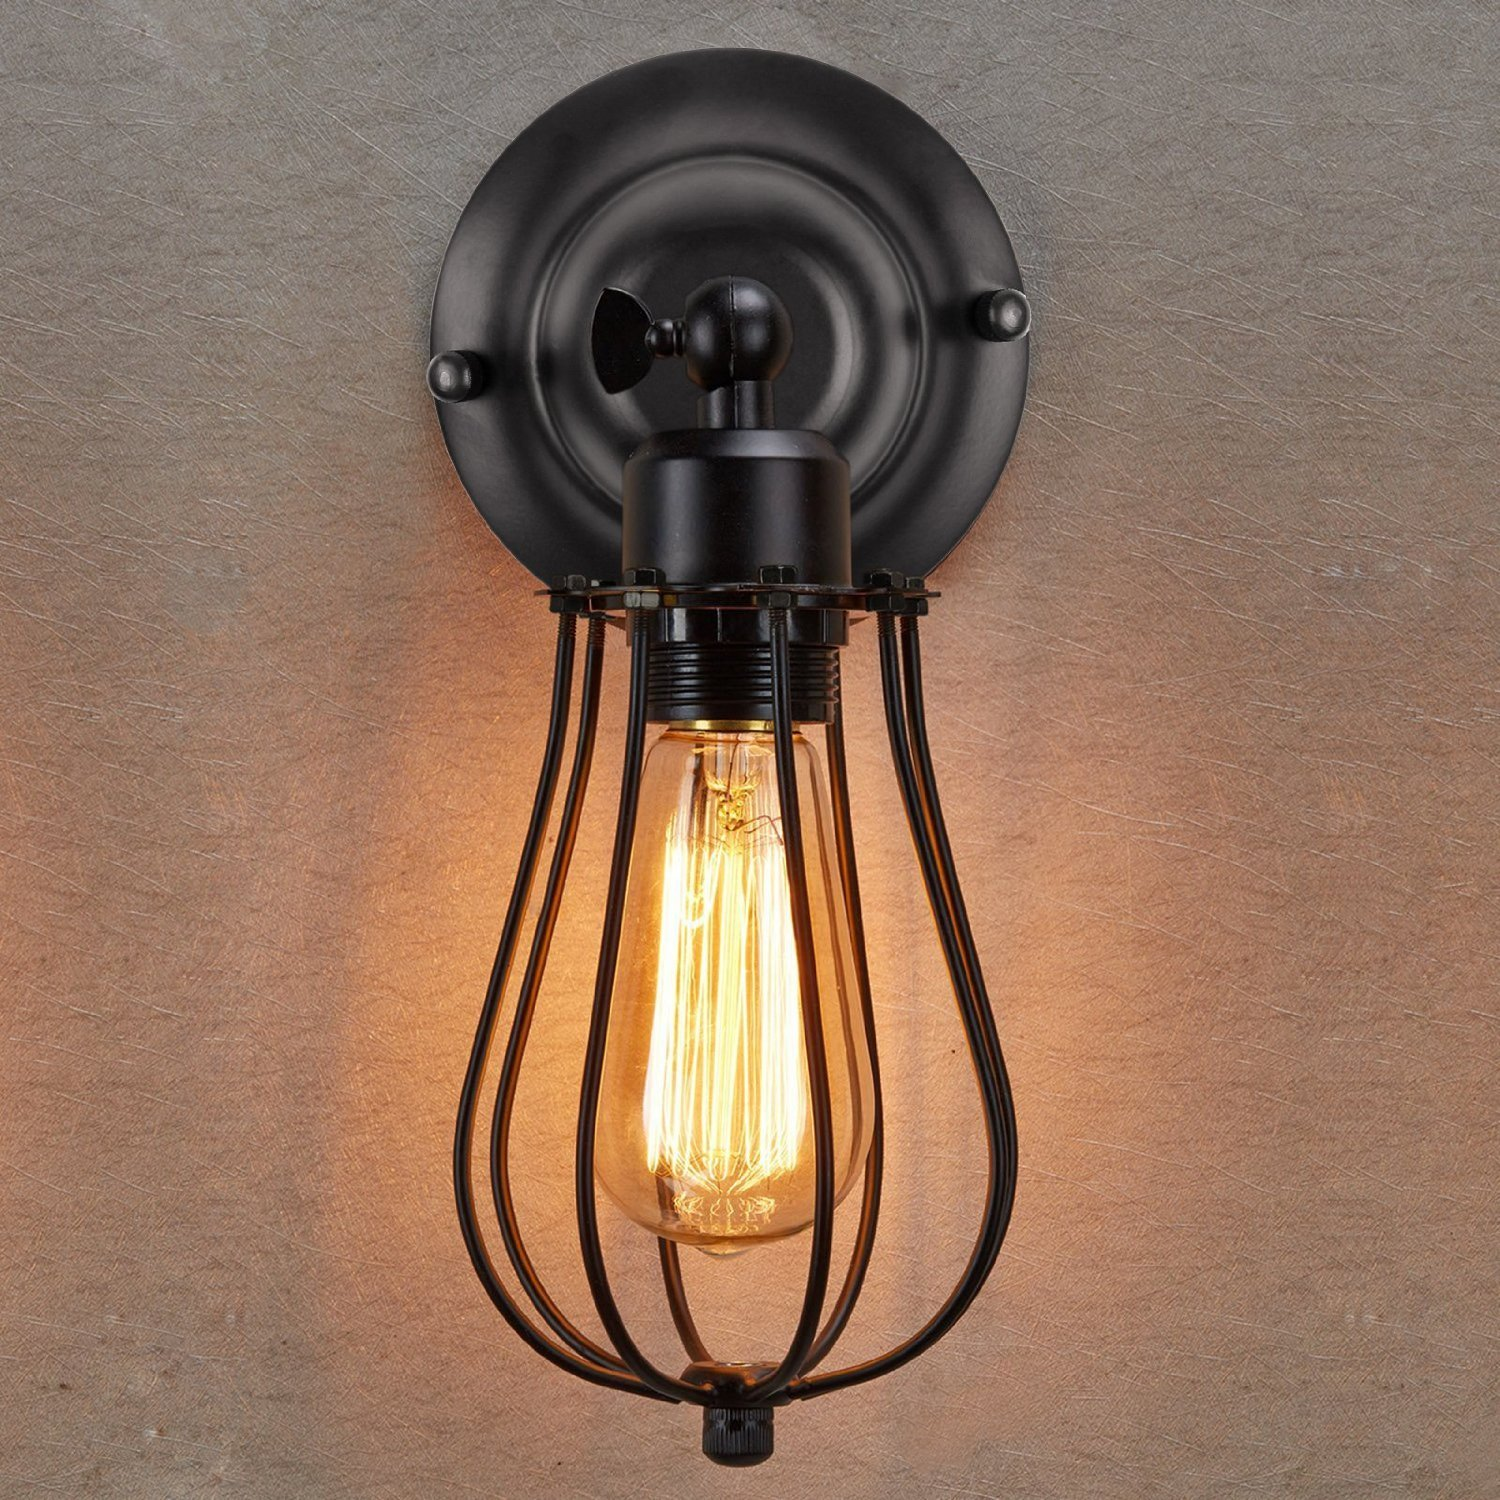 decorative supplies wall com lamp lights pipe industrial chrome lighting vintage edison sconce lightess item